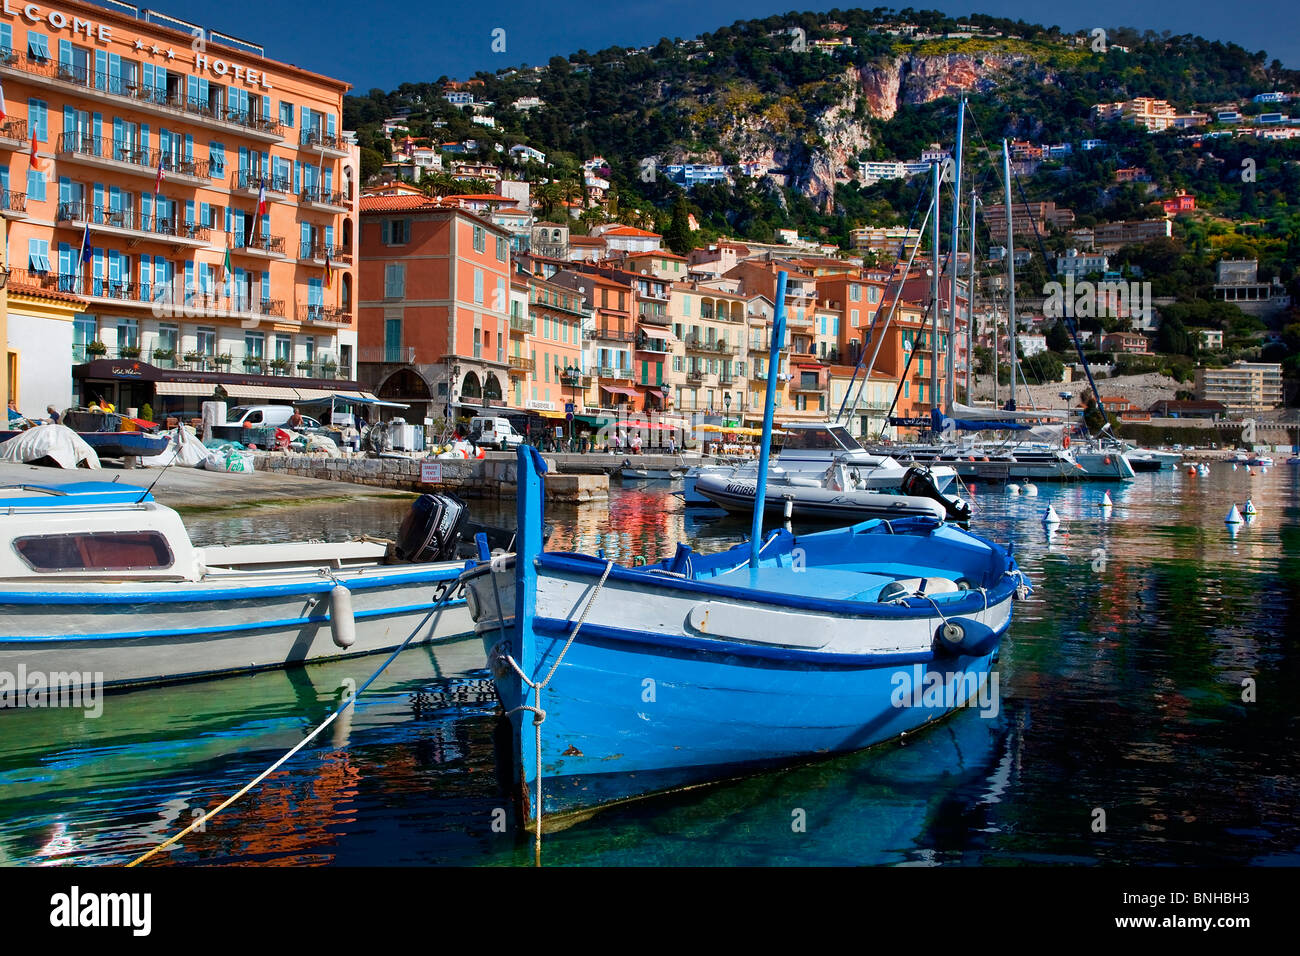 Europe, France, Alpes-Maritimes (06), Villefranche-sur-Mer Photo Stock